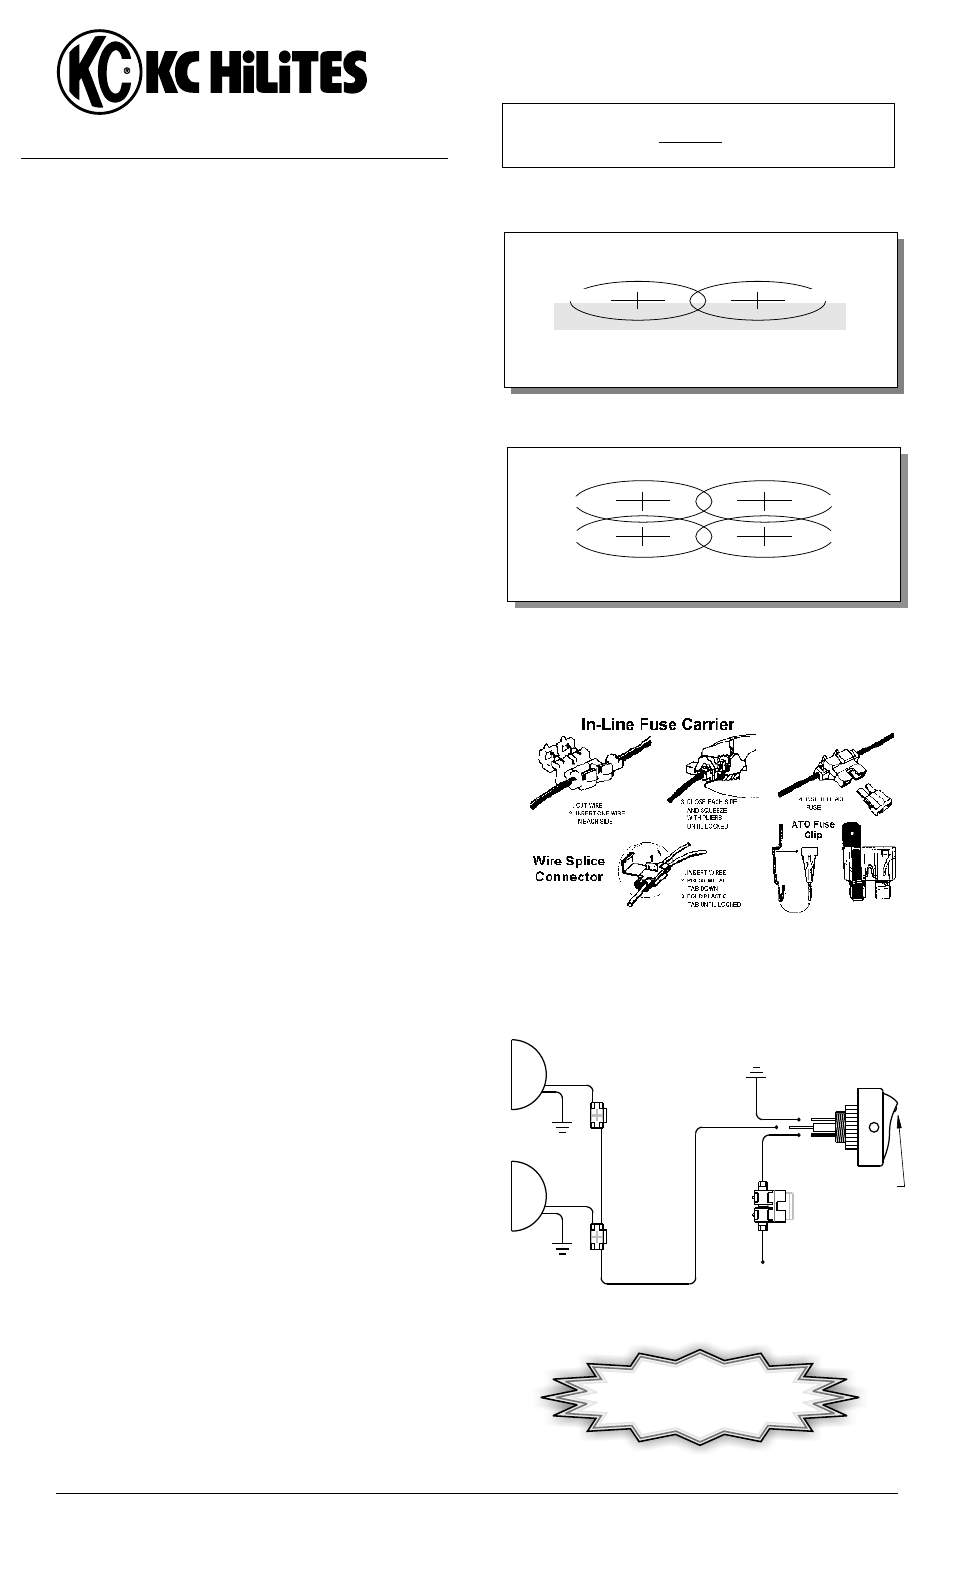 1985 F150 Ignition Module Wiring Schematic Great Design Of Duraspark Diagram 81 Circuit Maker 2006 Ford F 150 2004